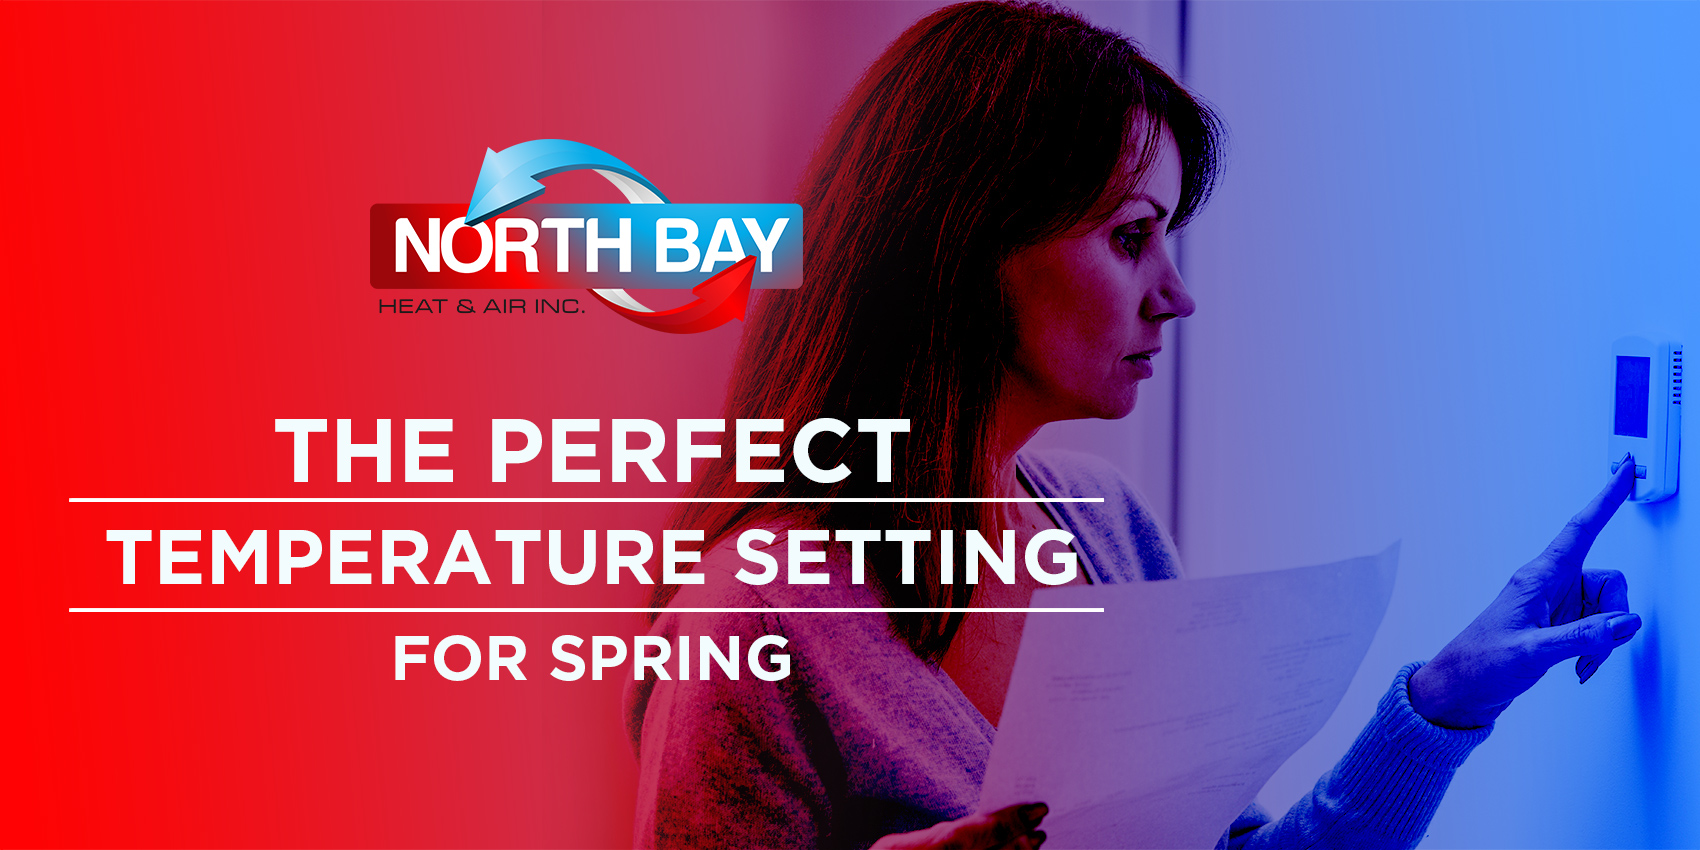 The Perfect Temperature Setting For Spring